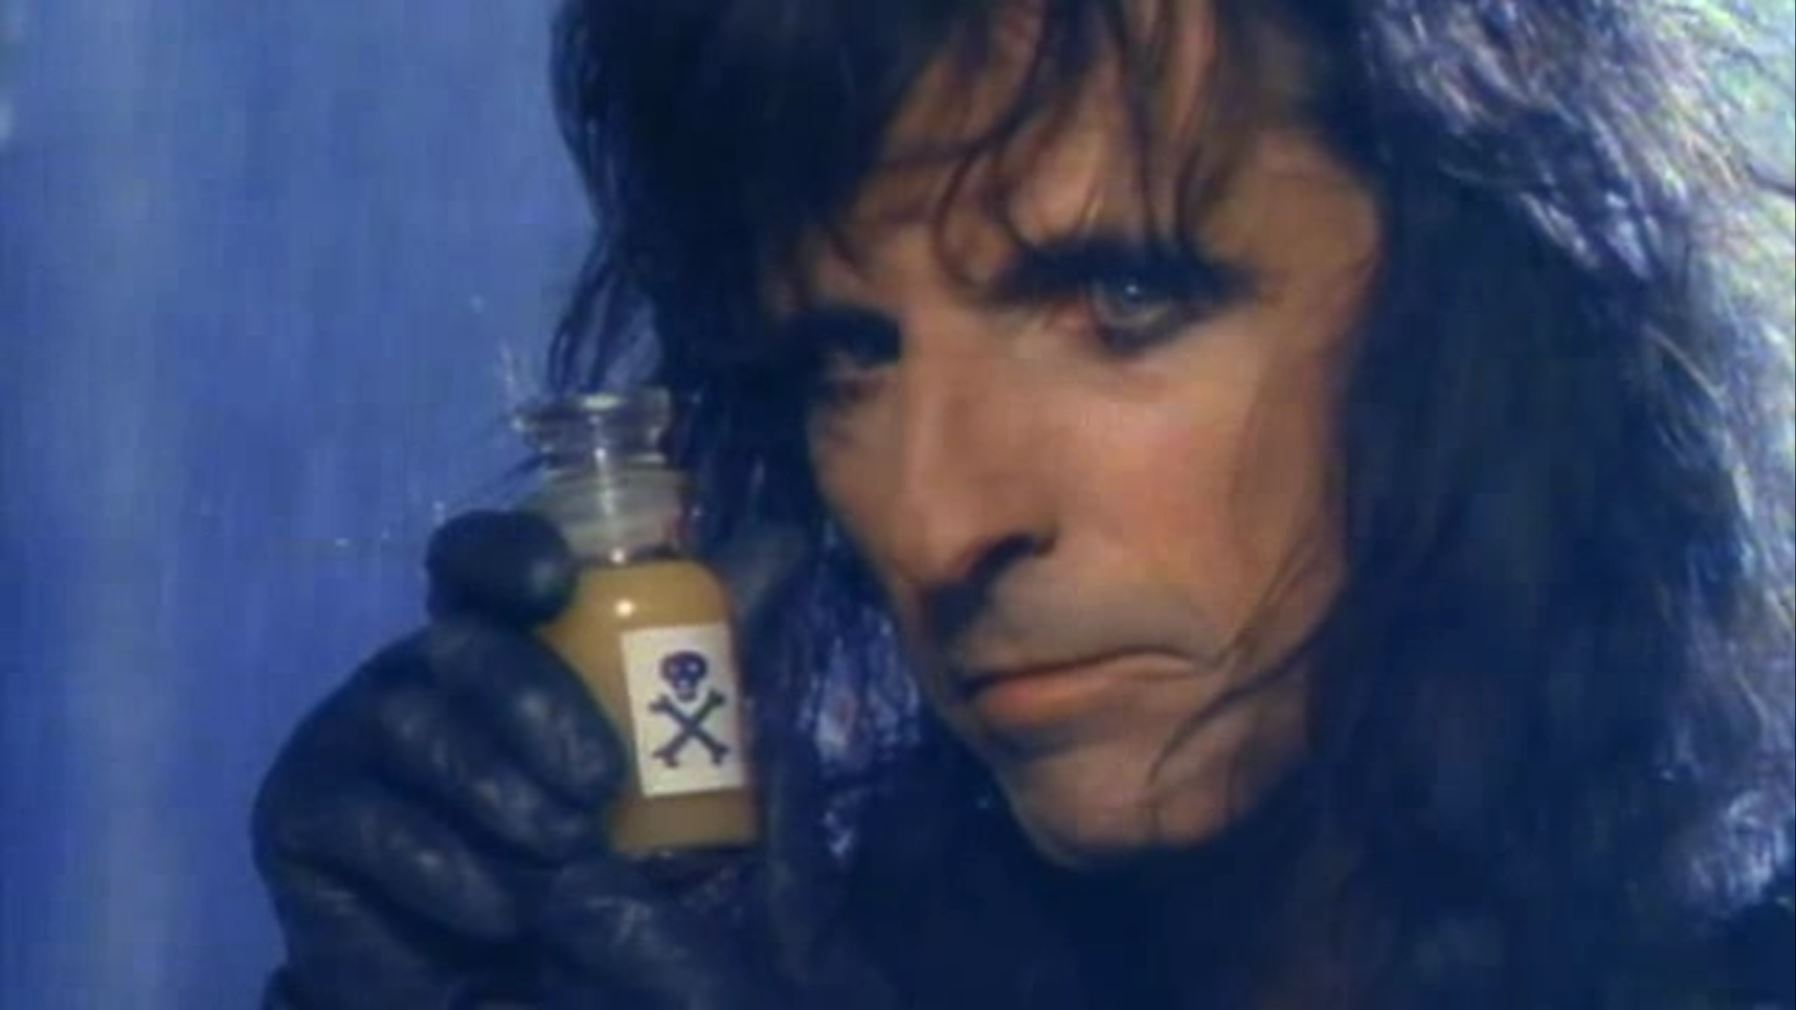 http://media.chstest.com/Alice_Cooper_%e2%80%93_Poison.jpg